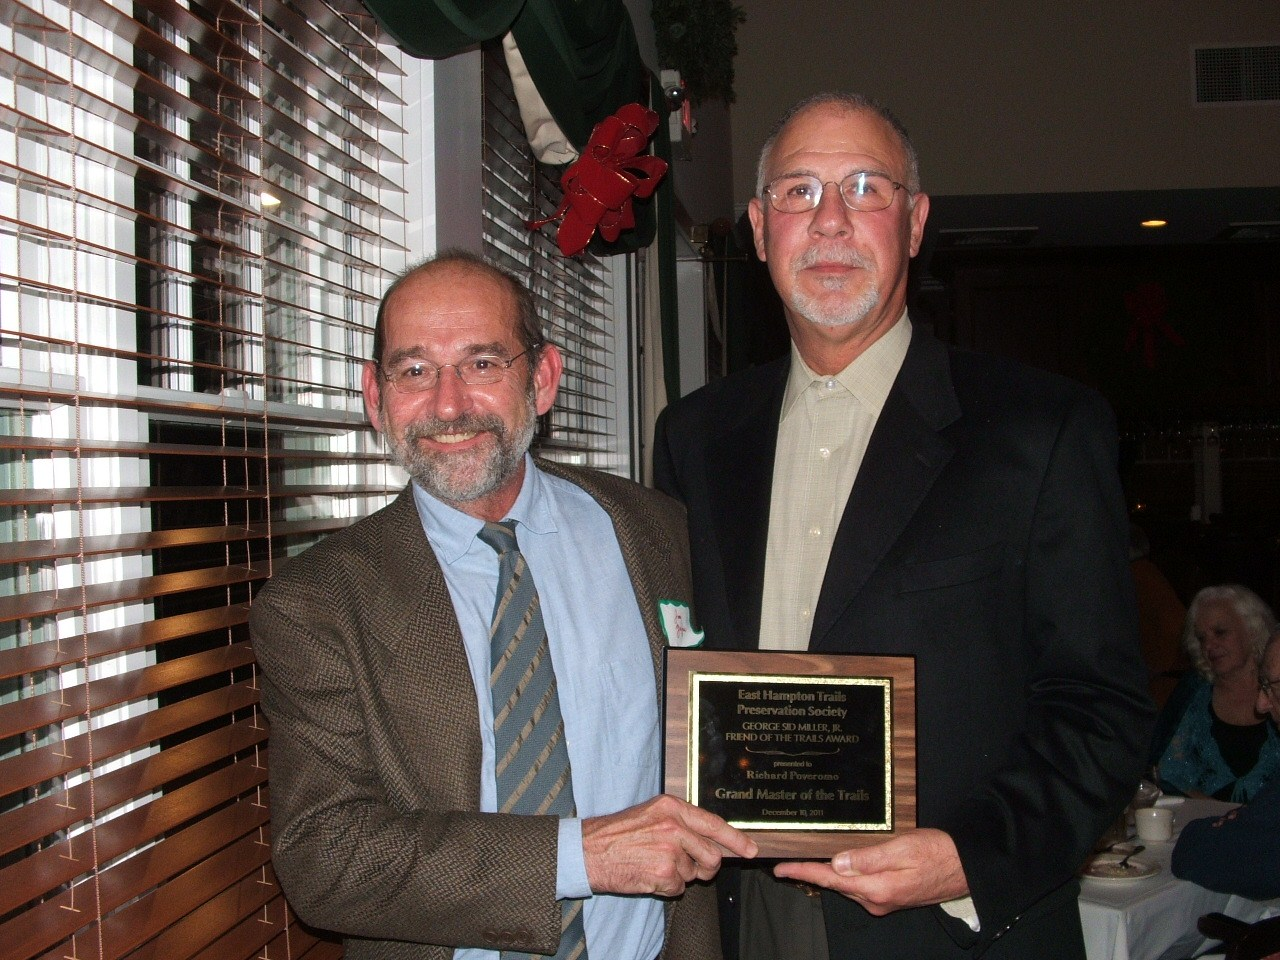 President Jim Zajac presented the 2011 Friend of the Trails Award to Richard Poveromo, VP of Trails Maintenance, at the holiday party in December.